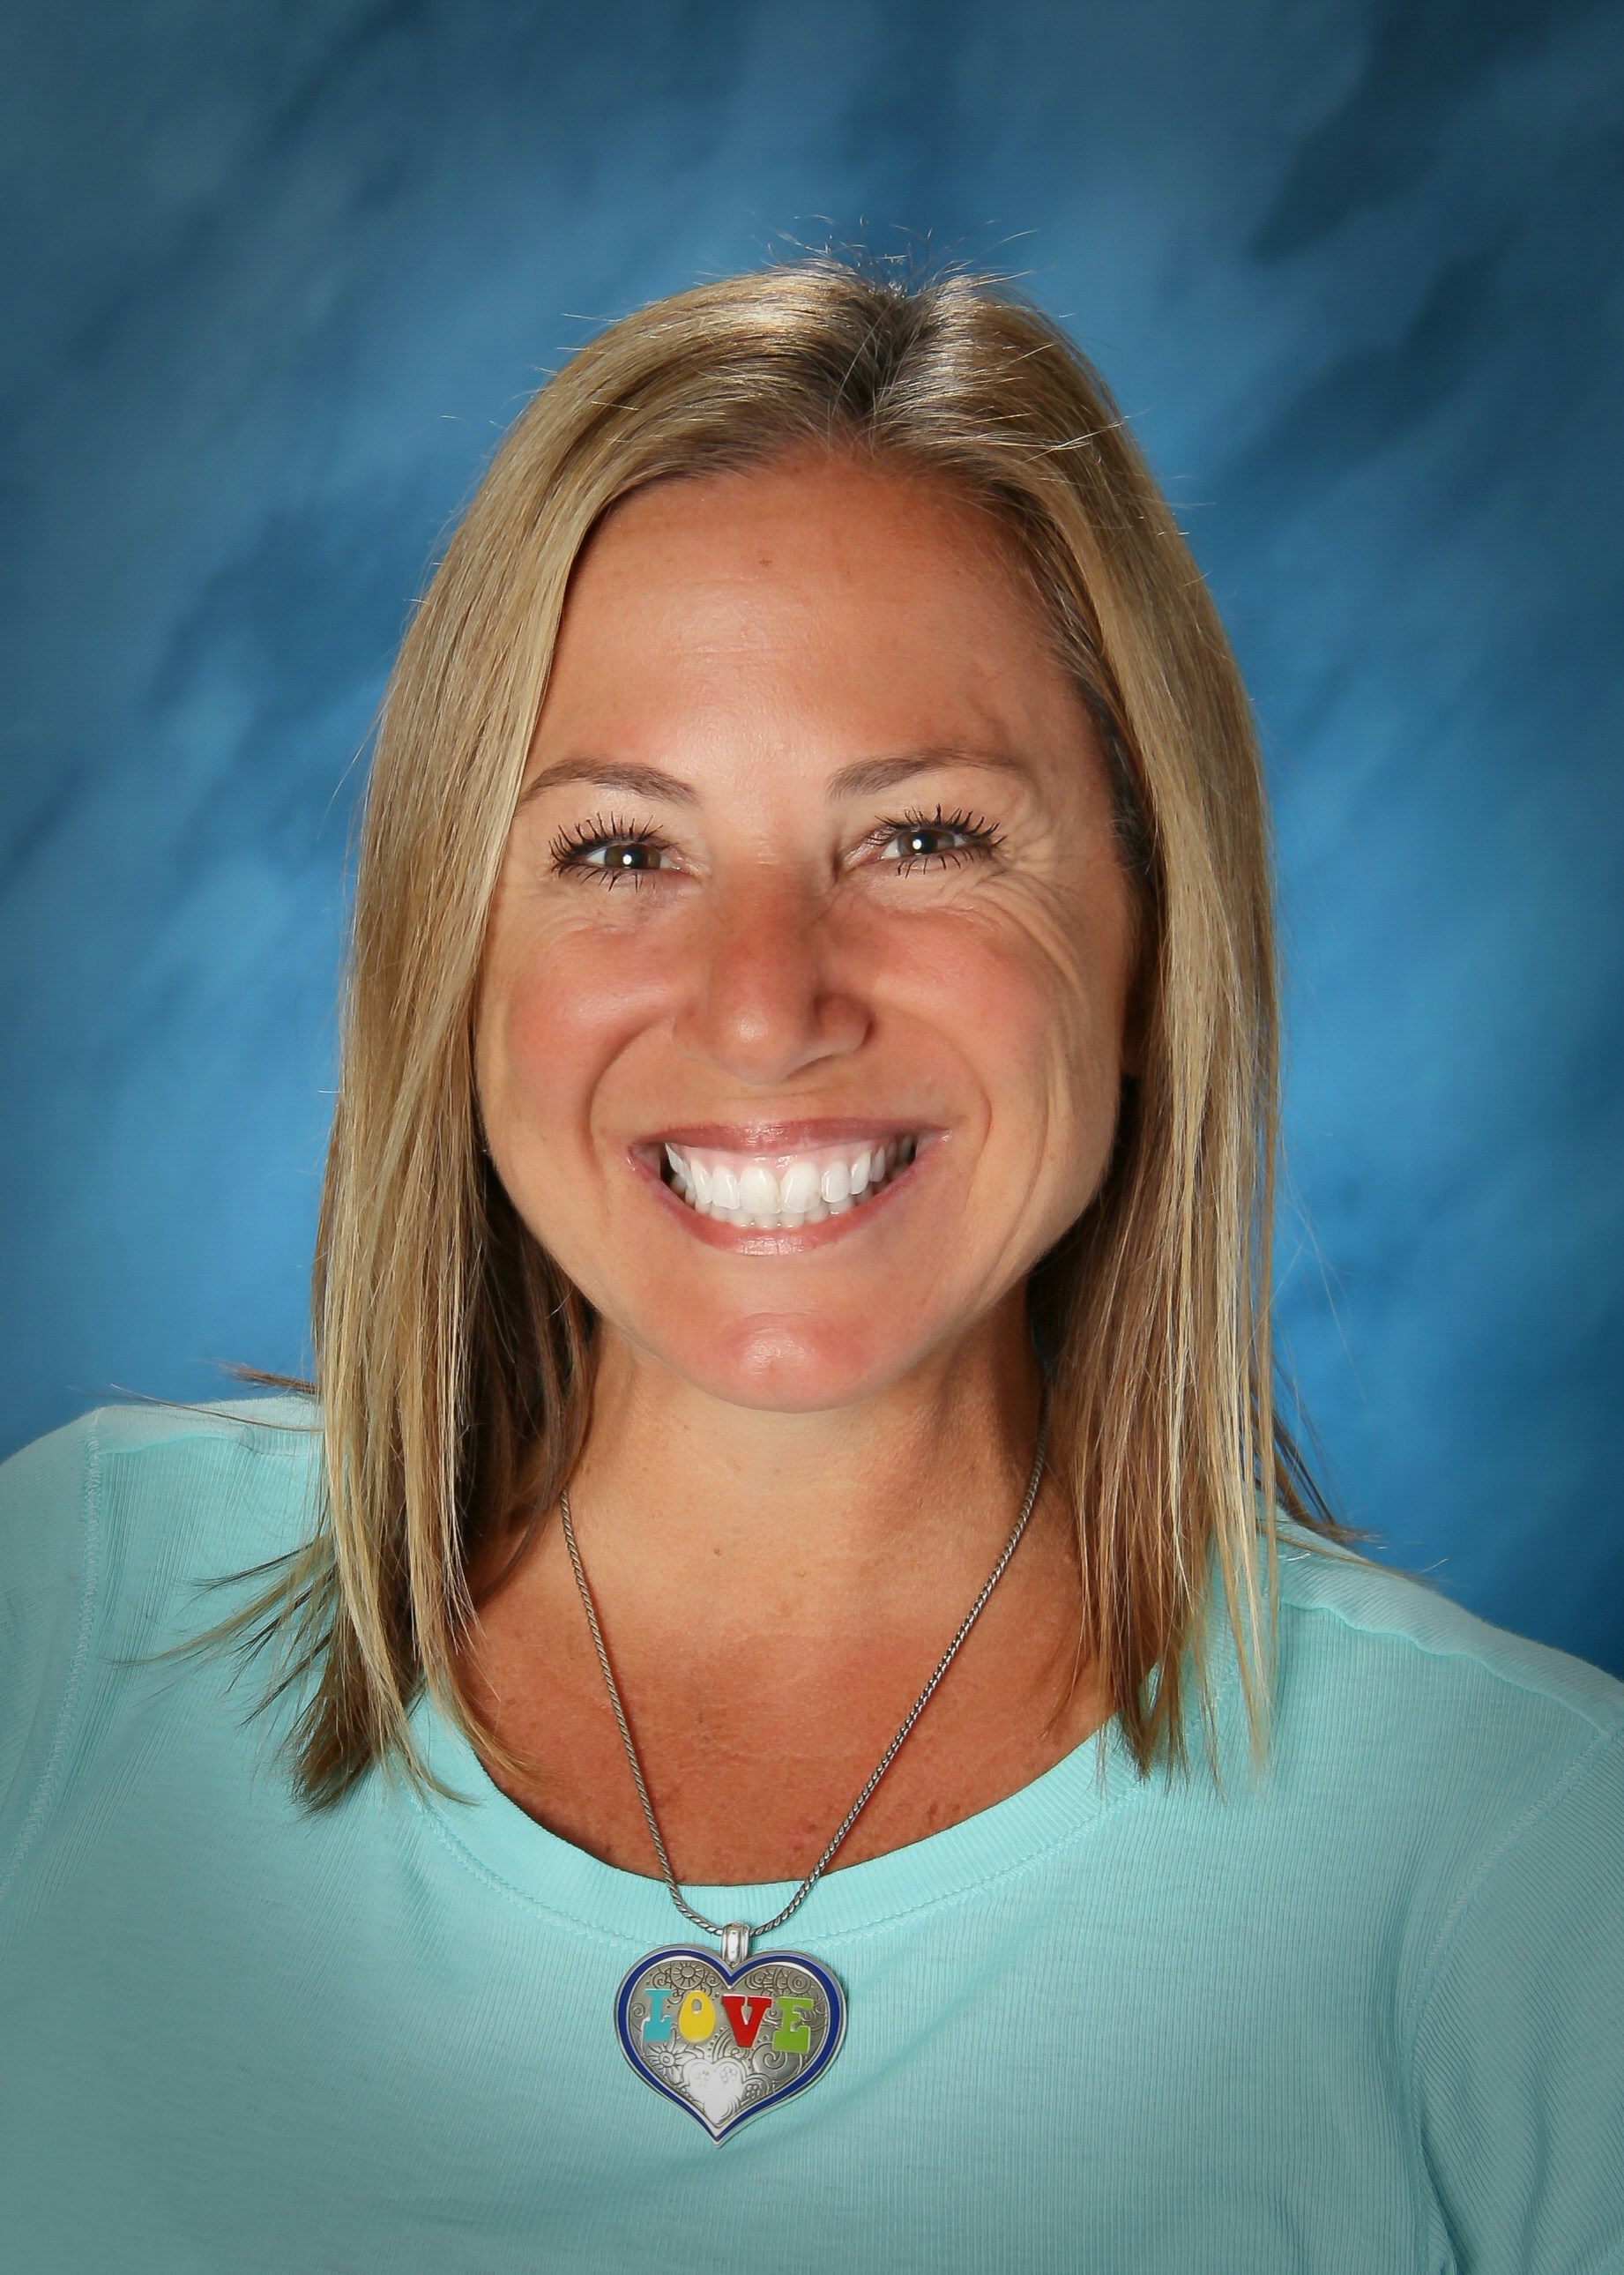 Mrs. Ingrassia on picture day, October 2017